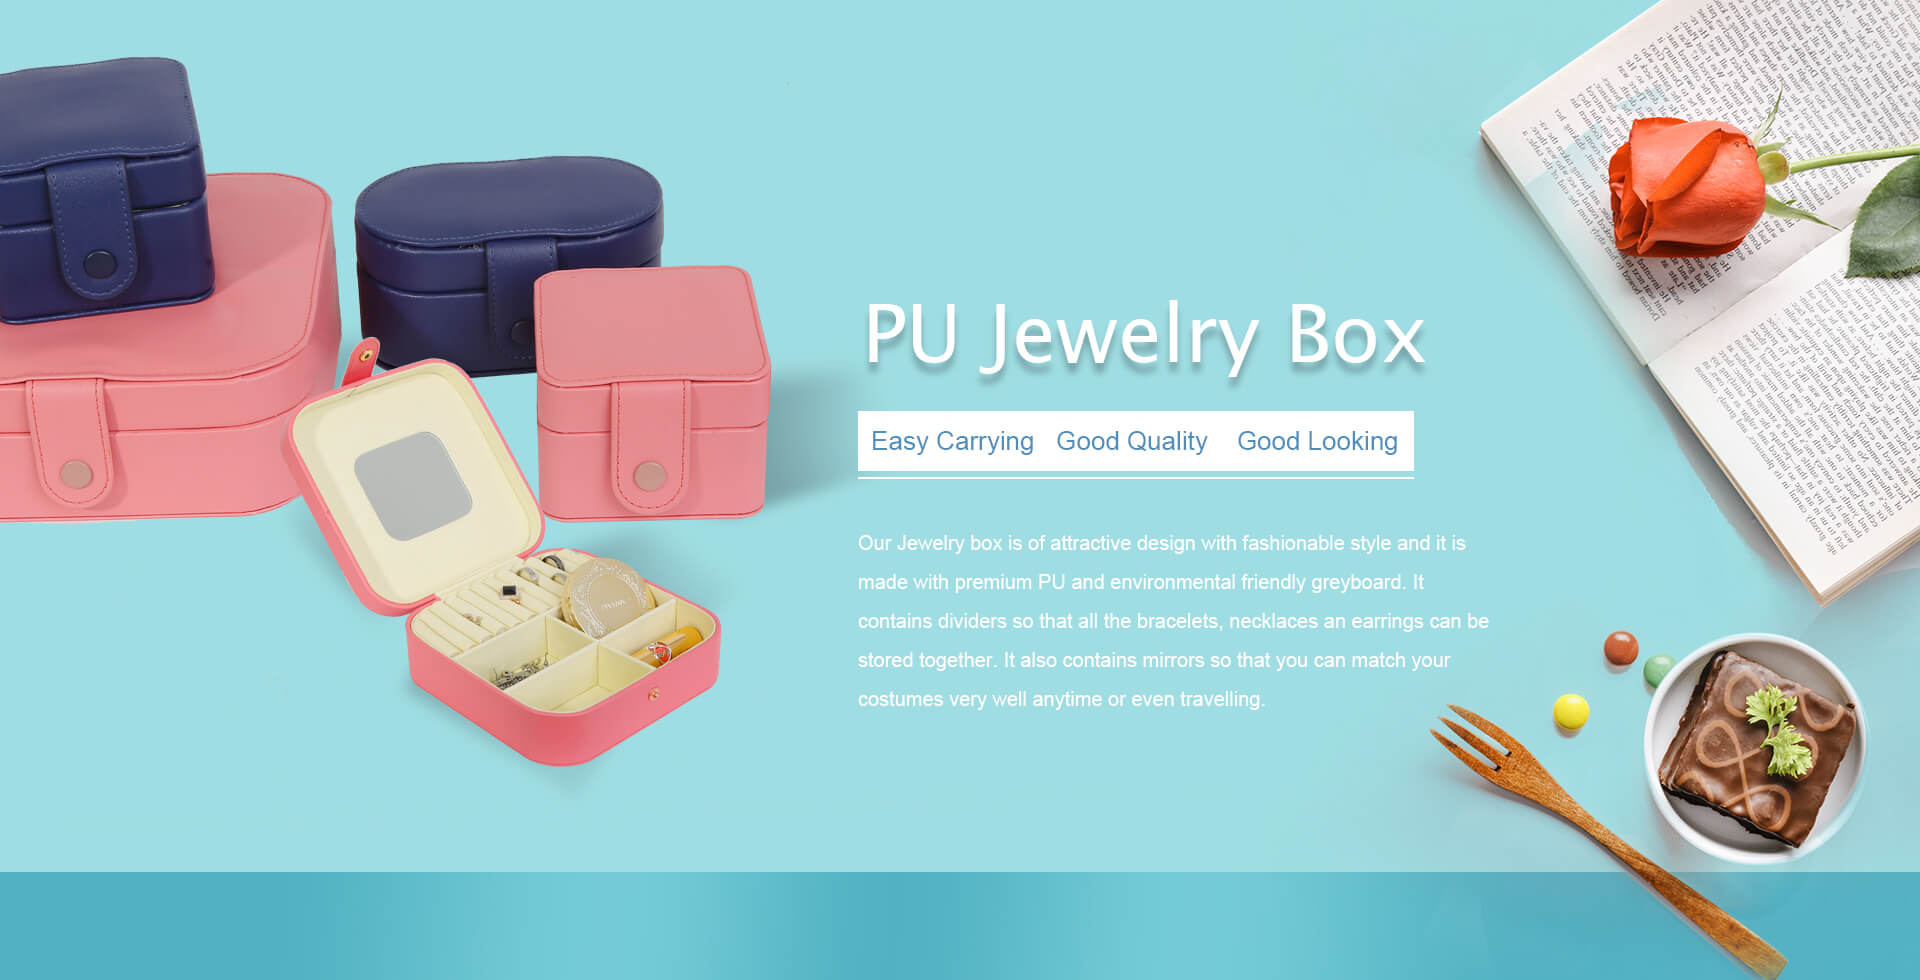 PU Jewelry Box: Easy Carrying, Good Quality, Good Looking.